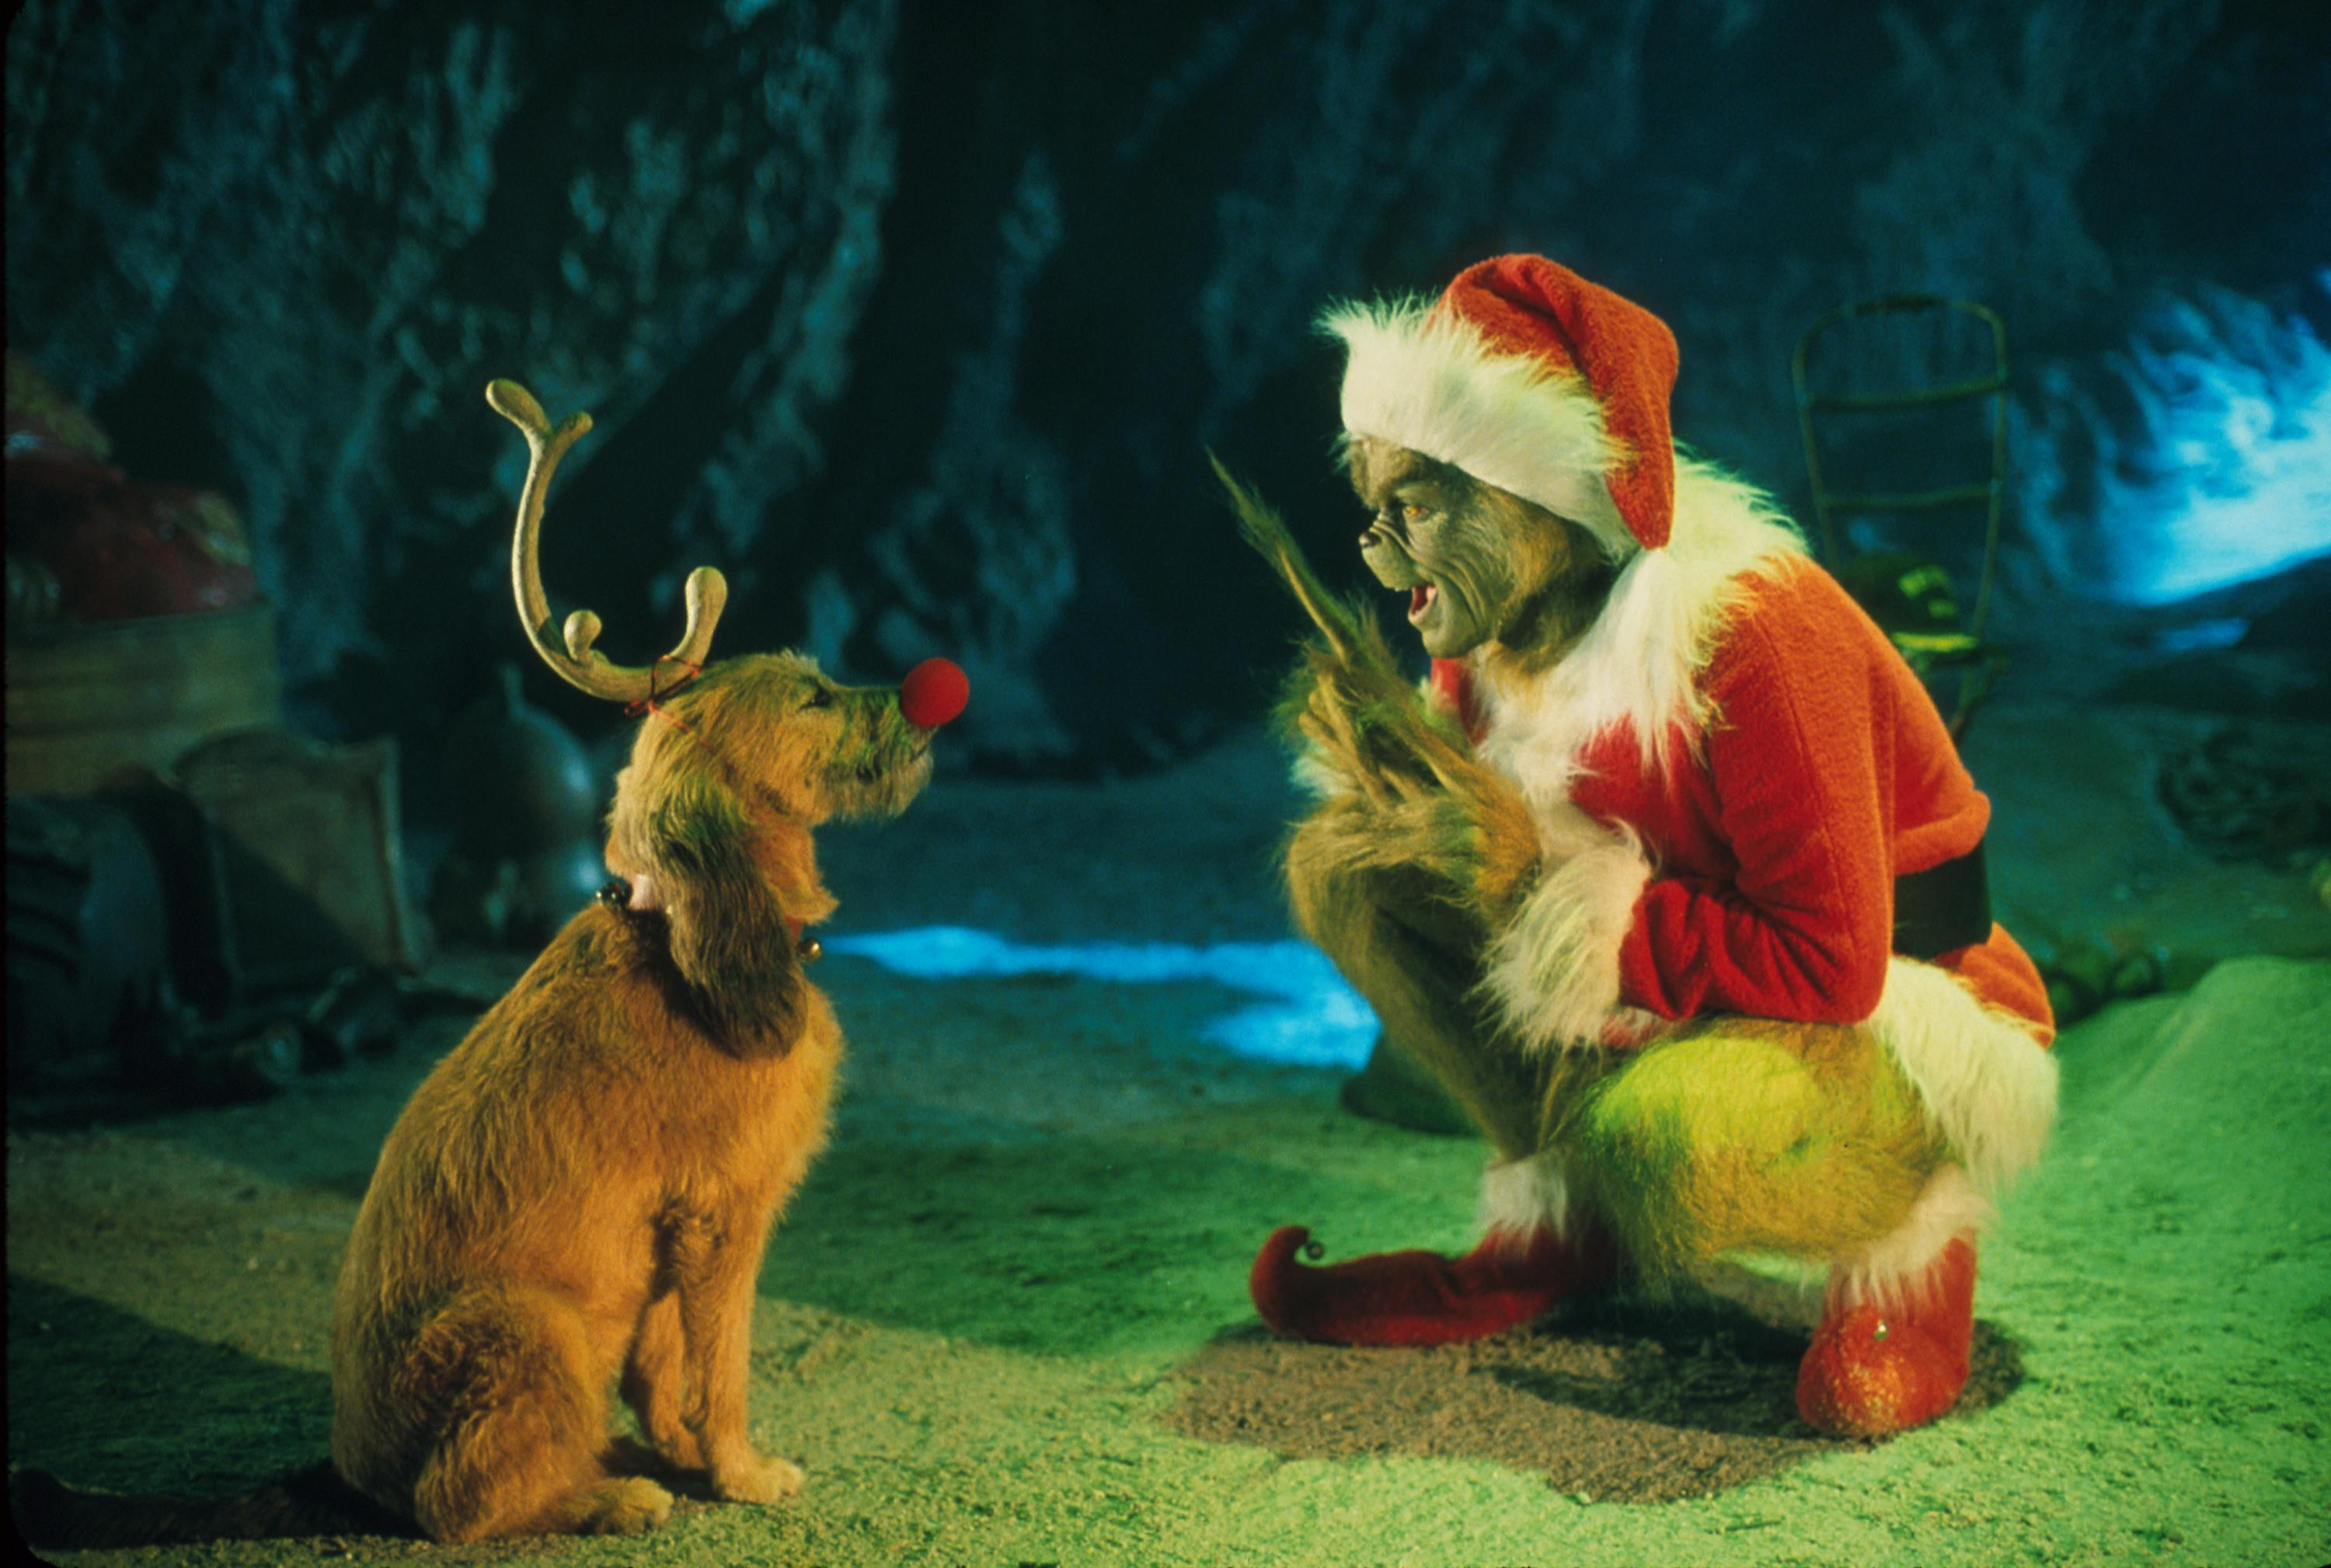 Does the Grinch stole Christmas & # 39